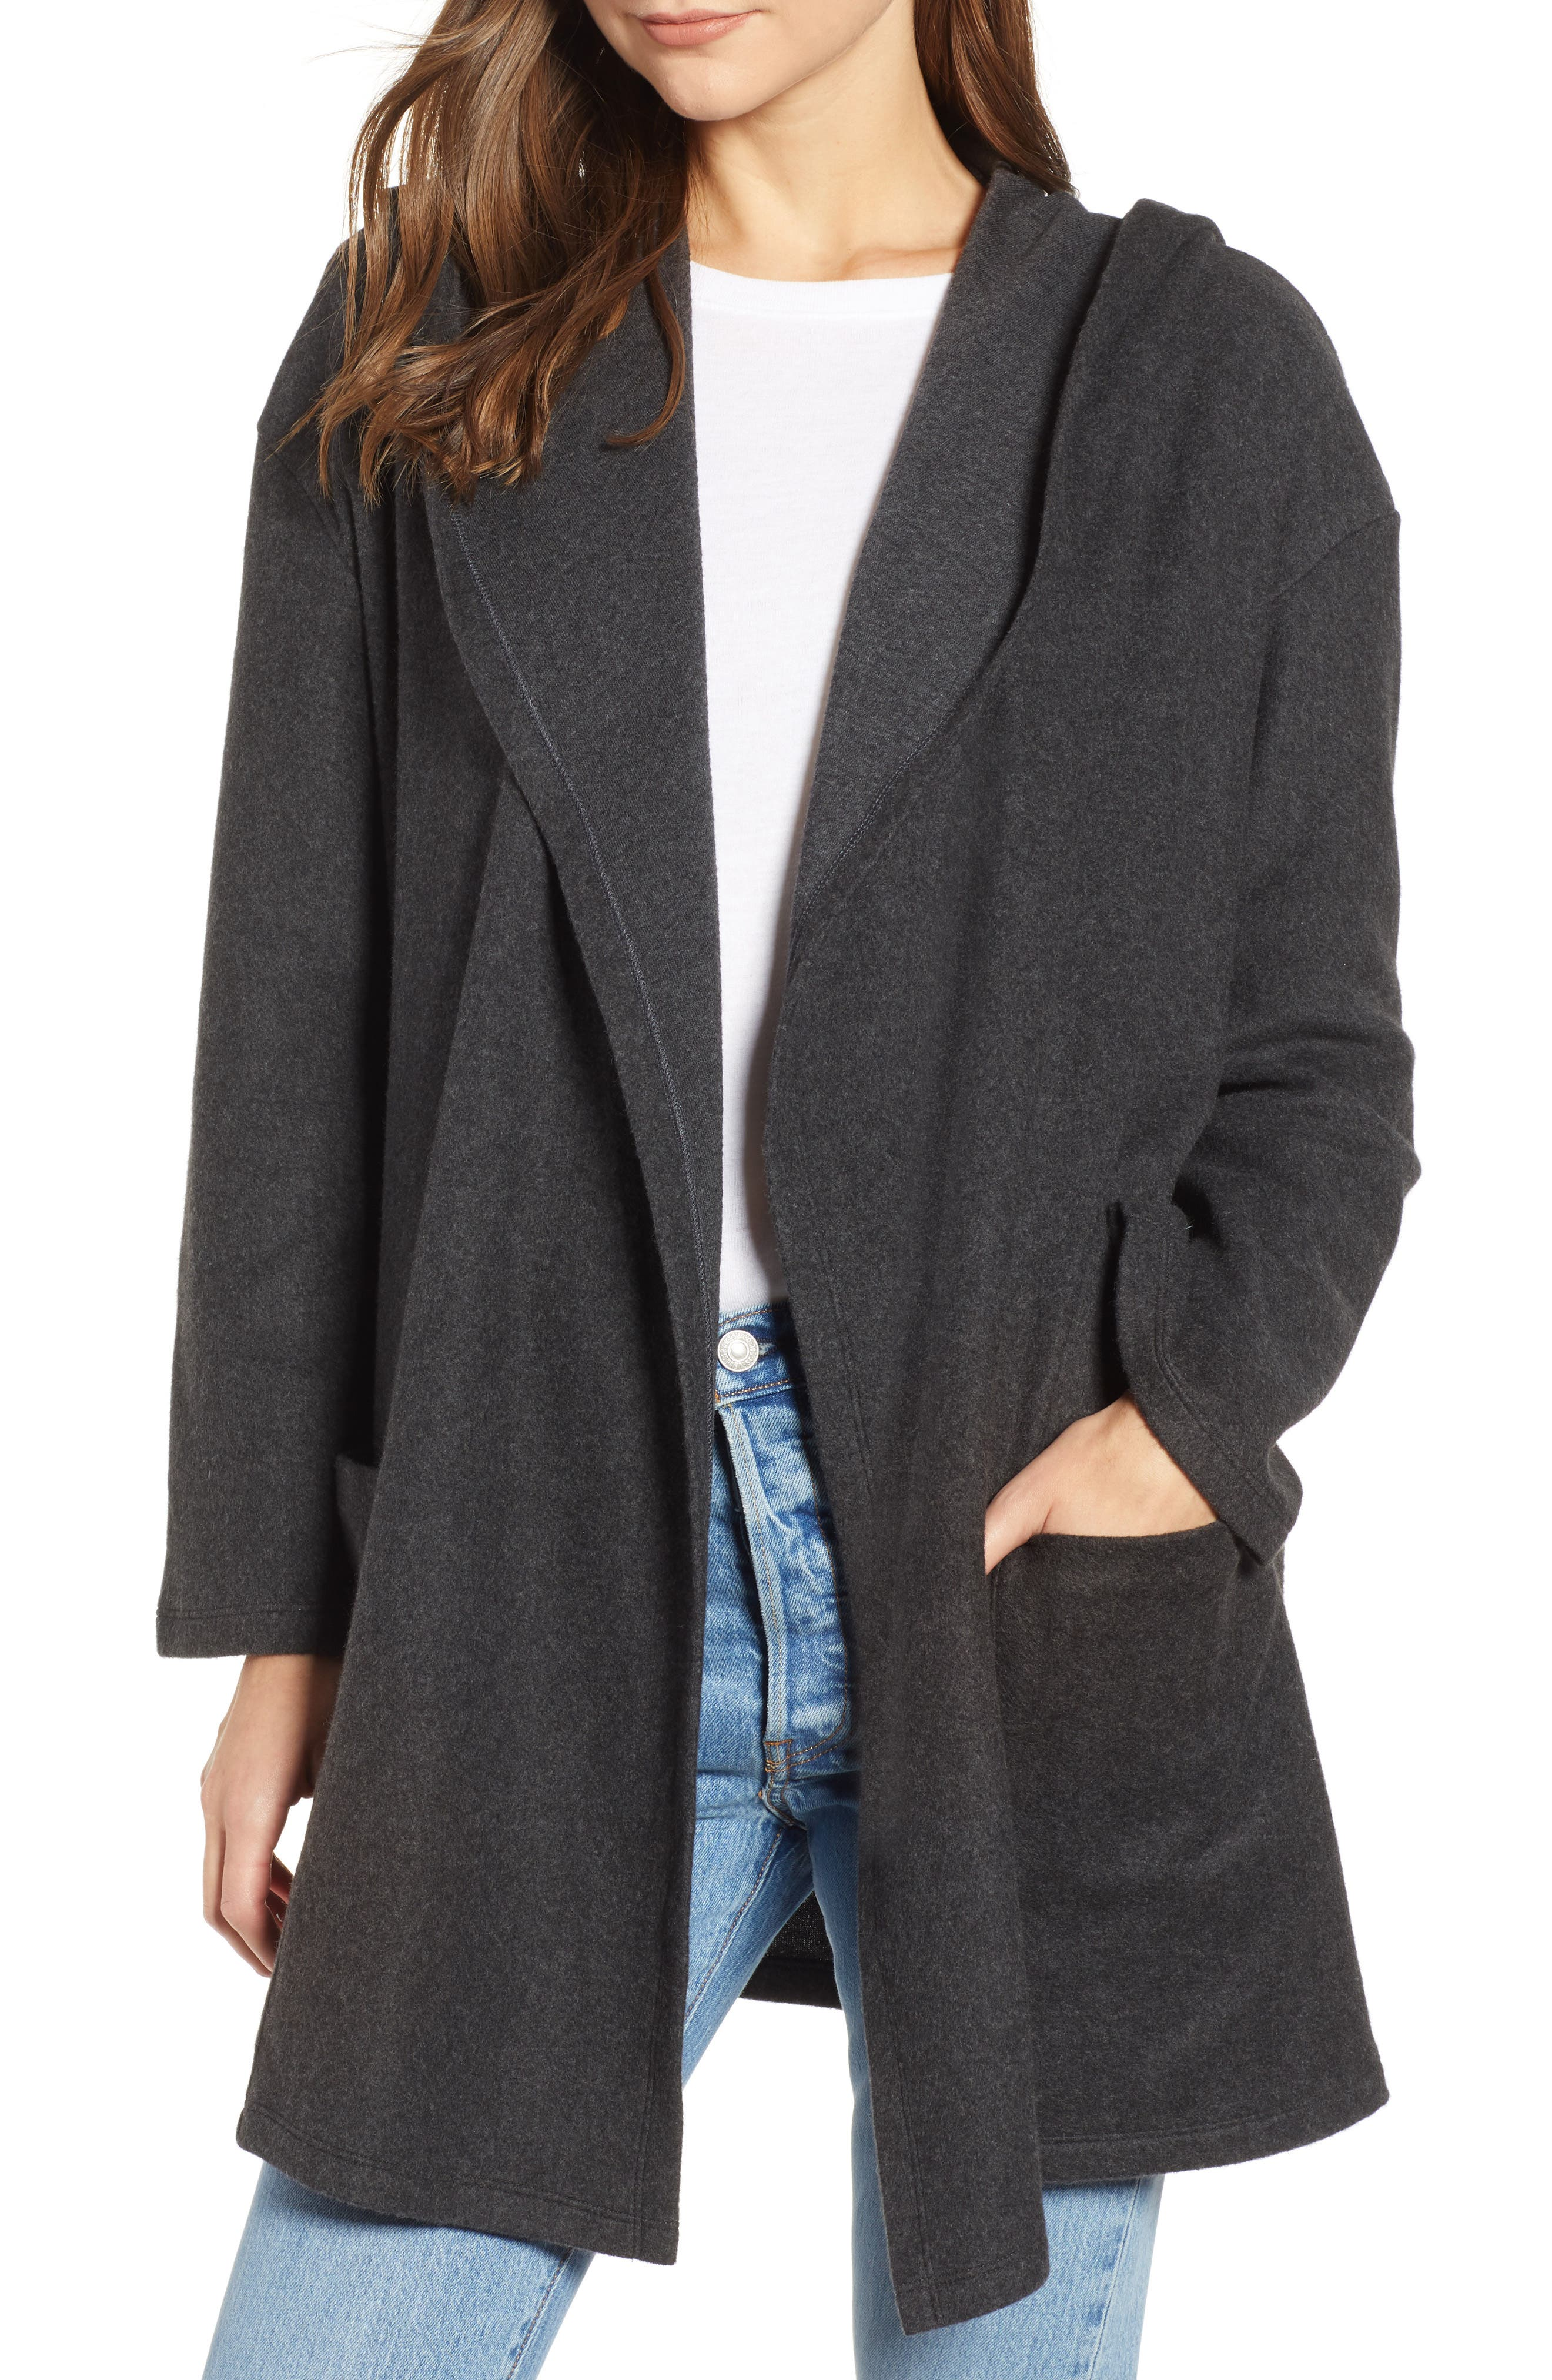 Hooded Open Front Cardigan,                             Main thumbnail 1, color,                             GREY DARK CHARCOAL HEATHER